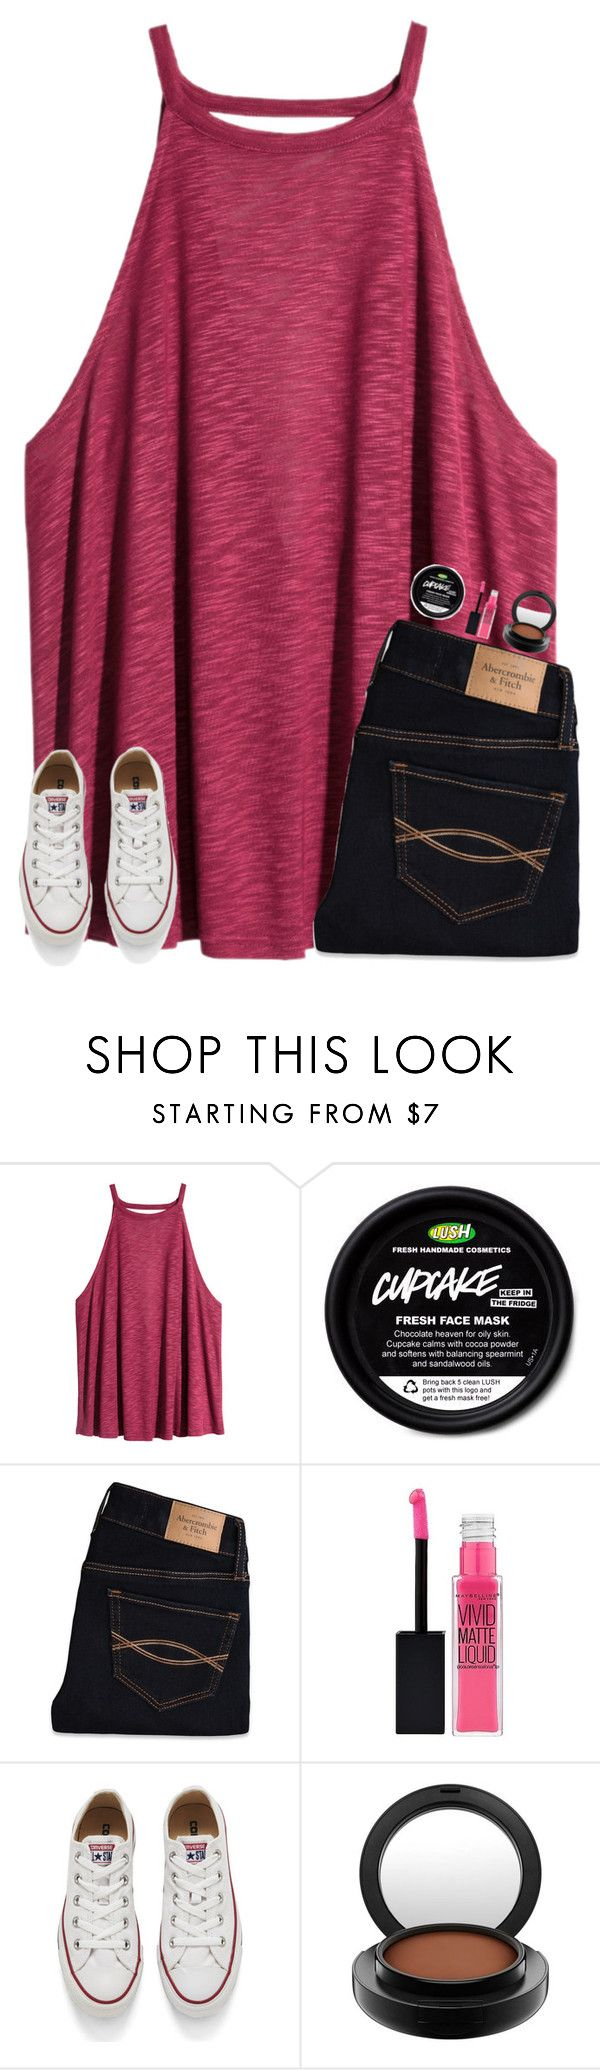 """""""u guys like this?"""" by smileyavenuegirl ❤ liked on Polyvore featuring H&M, Abercrombie & Fitch, Maybelline, Converse and MAC Cosmetics"""